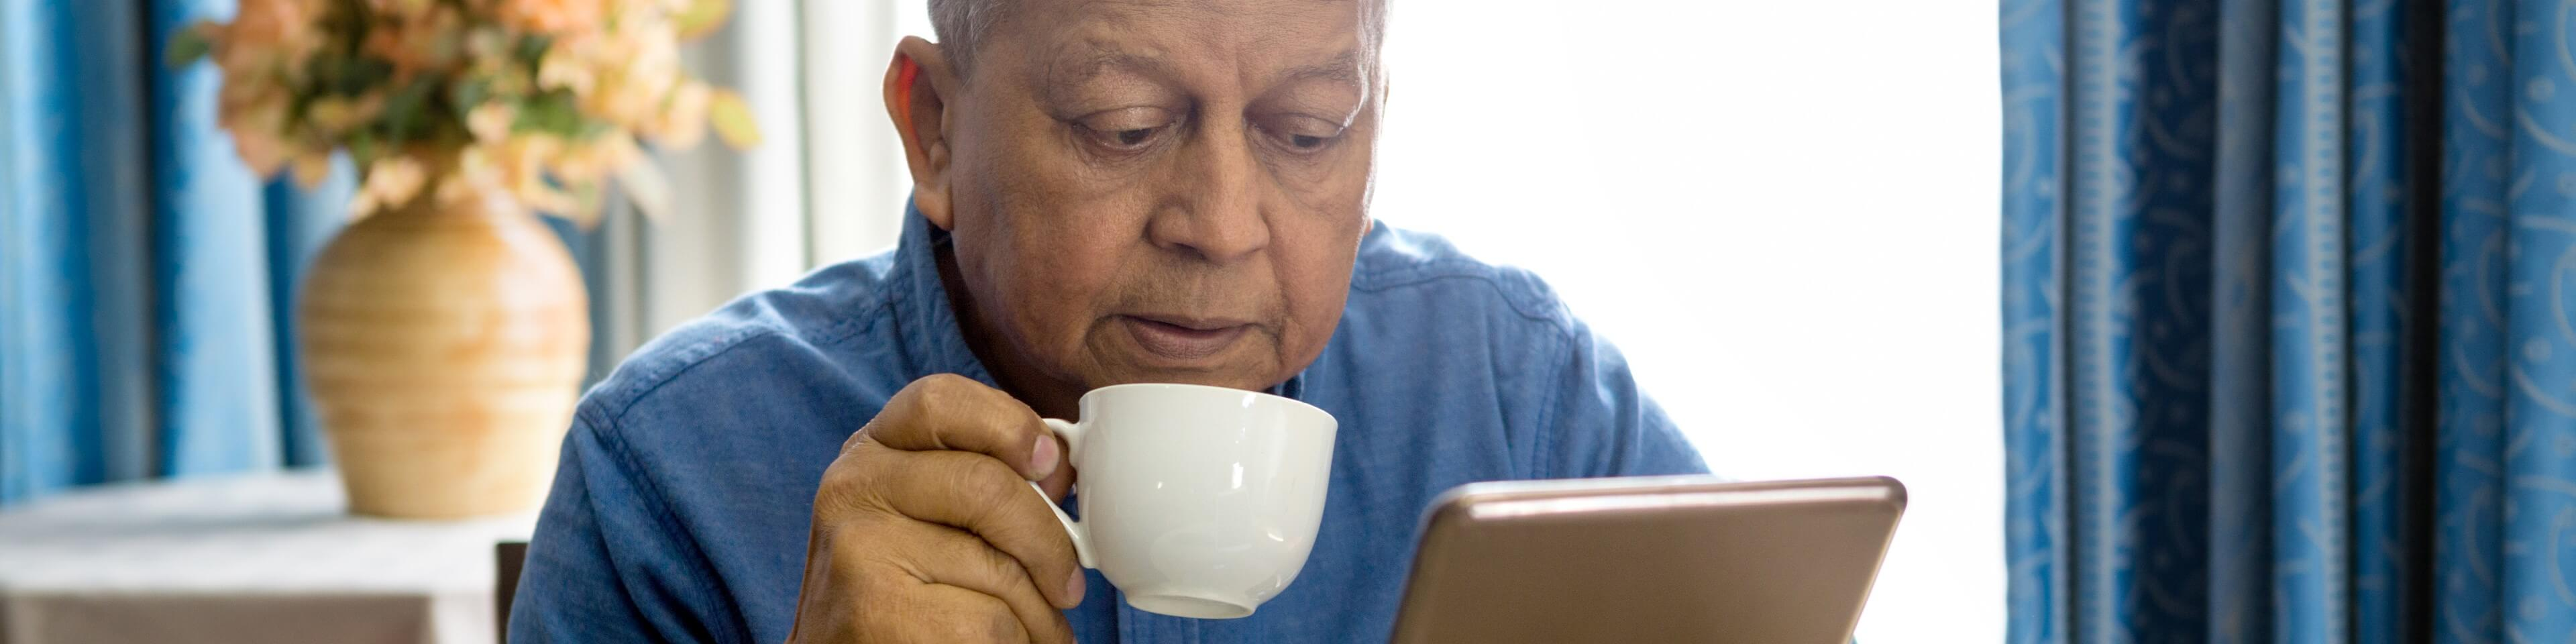 Patient drinking coffee while browsing with a tablet